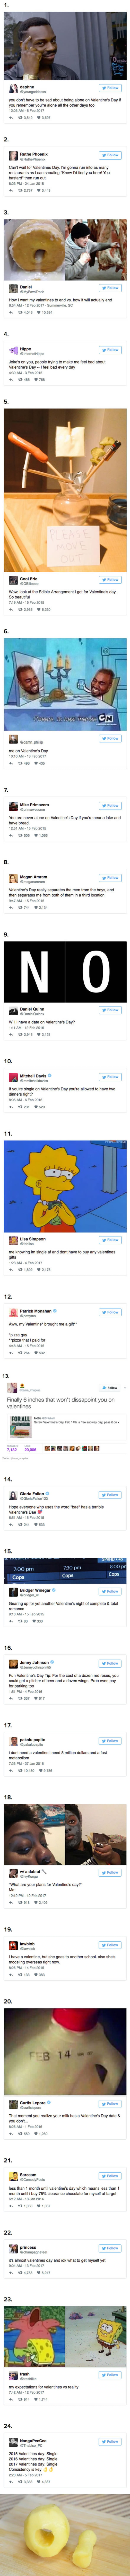 24 Tweets For All The Single People On Valentine's Day